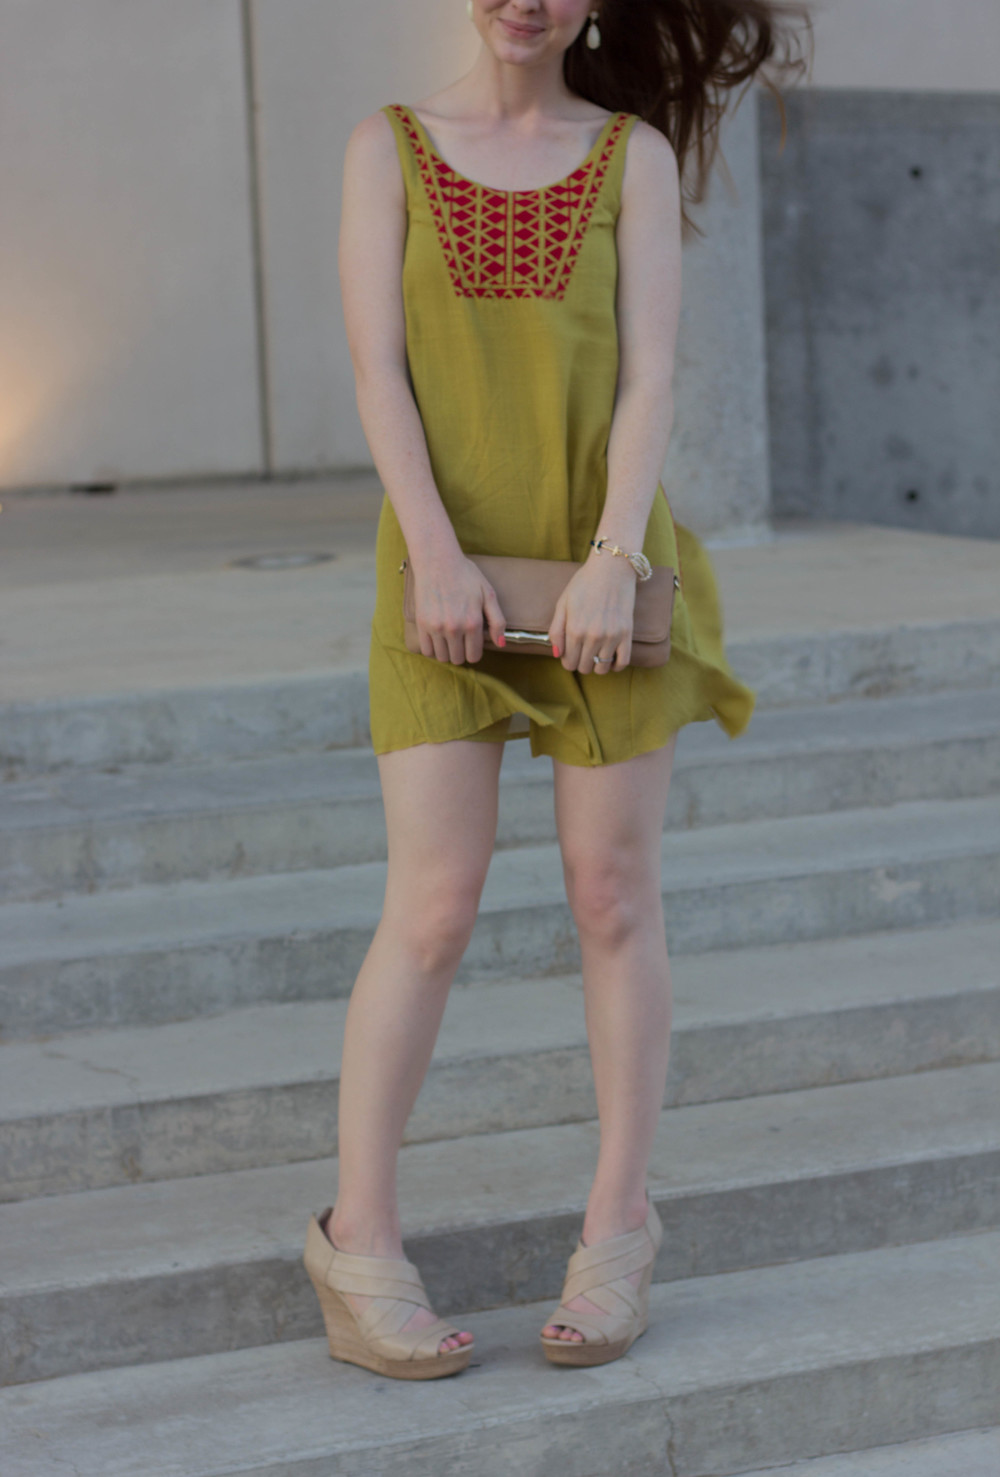 thml embroidered dress, embroidery, chartreuse, seychelles nued wedges, elaine turner clutch, kendra scott earrings